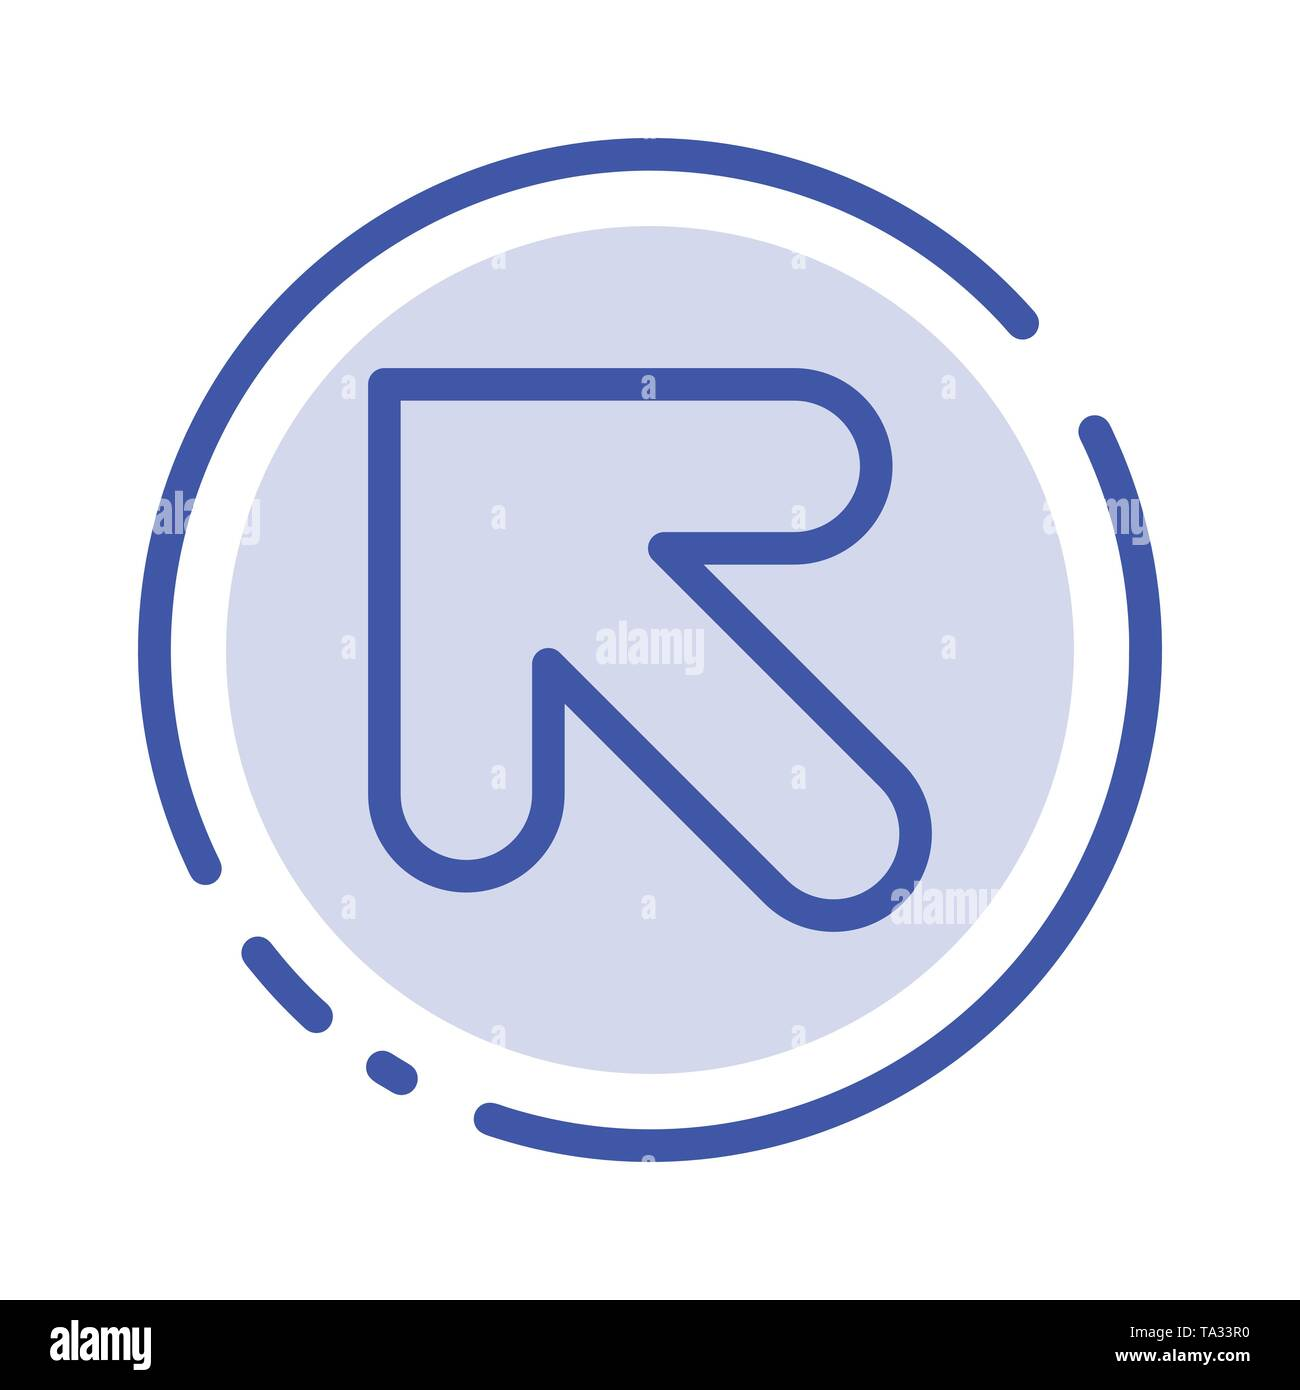 Arrow, Up, Left Blue Dotted Line Line Icon - Stock Image